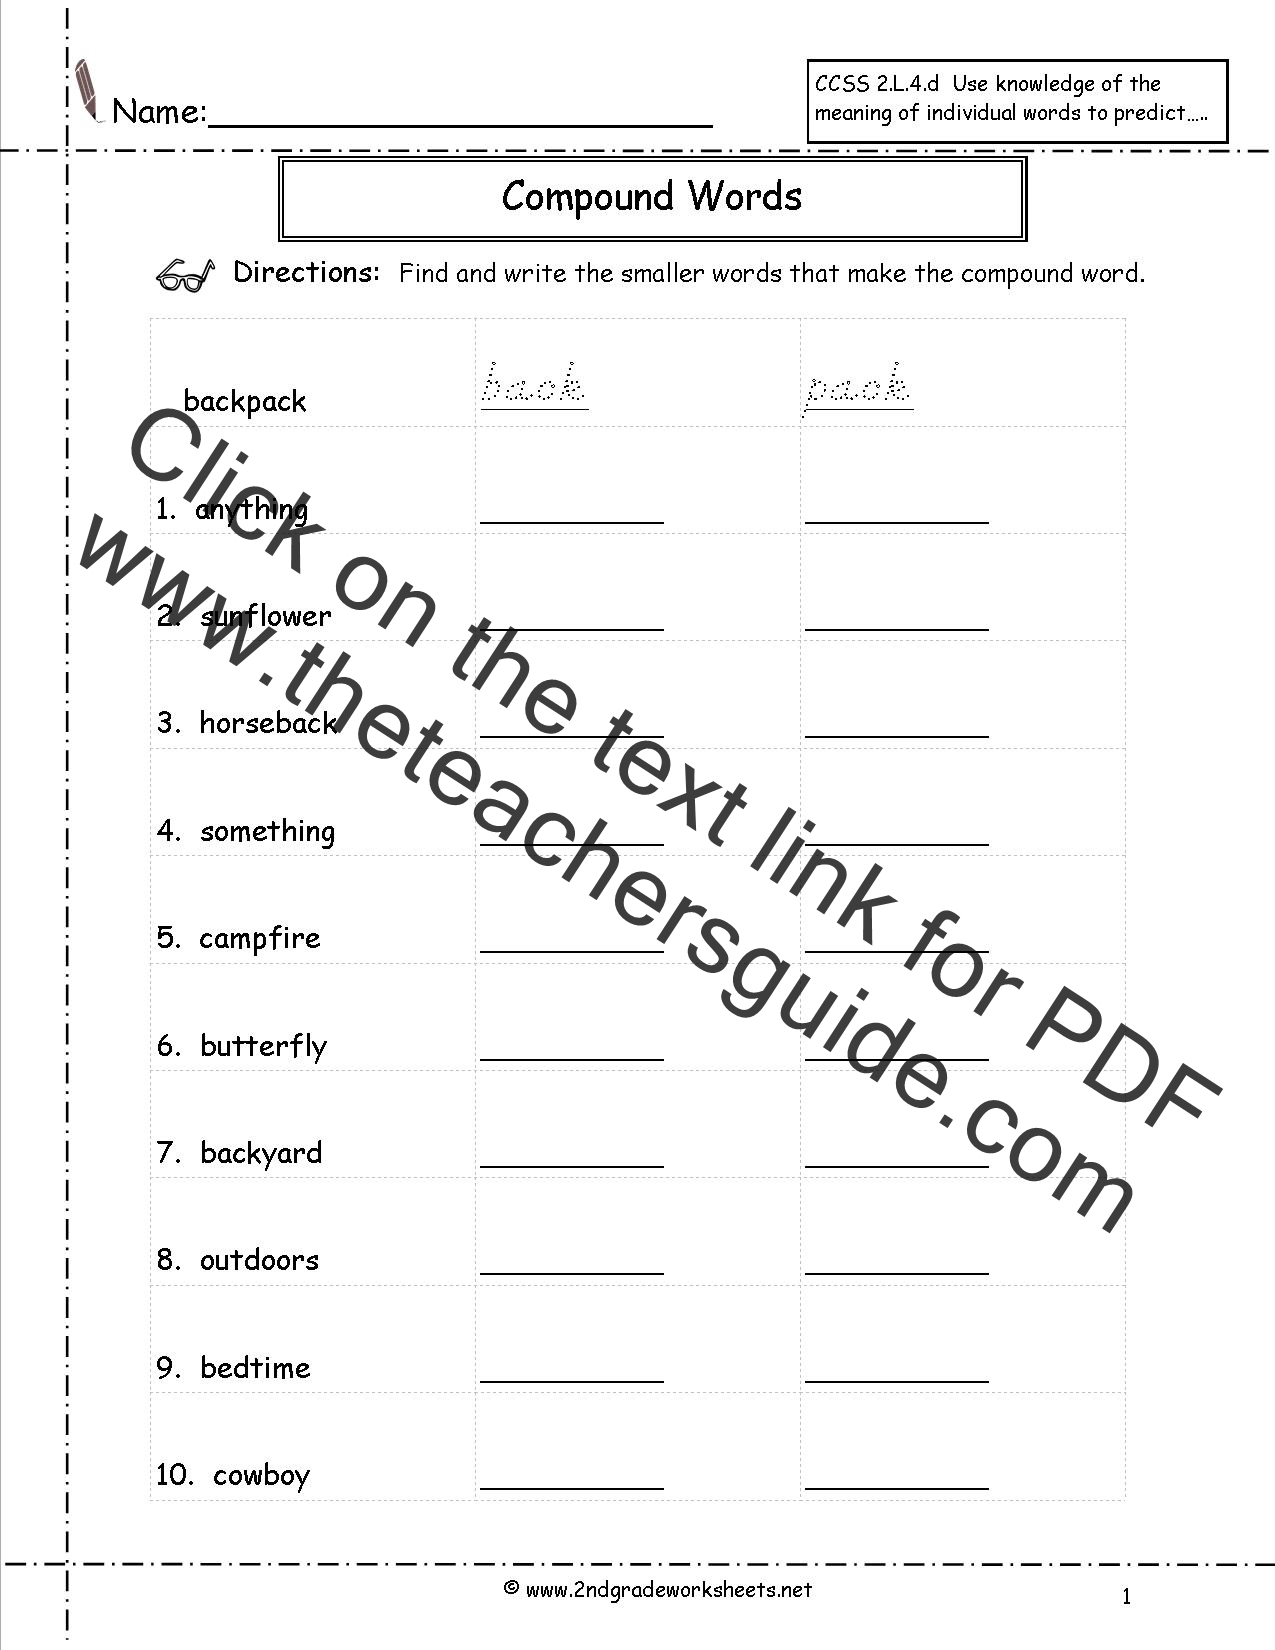 Printables Printable Worksheets For 2nd Grade free languagegrammar worksheets and printouts compound words worksheets